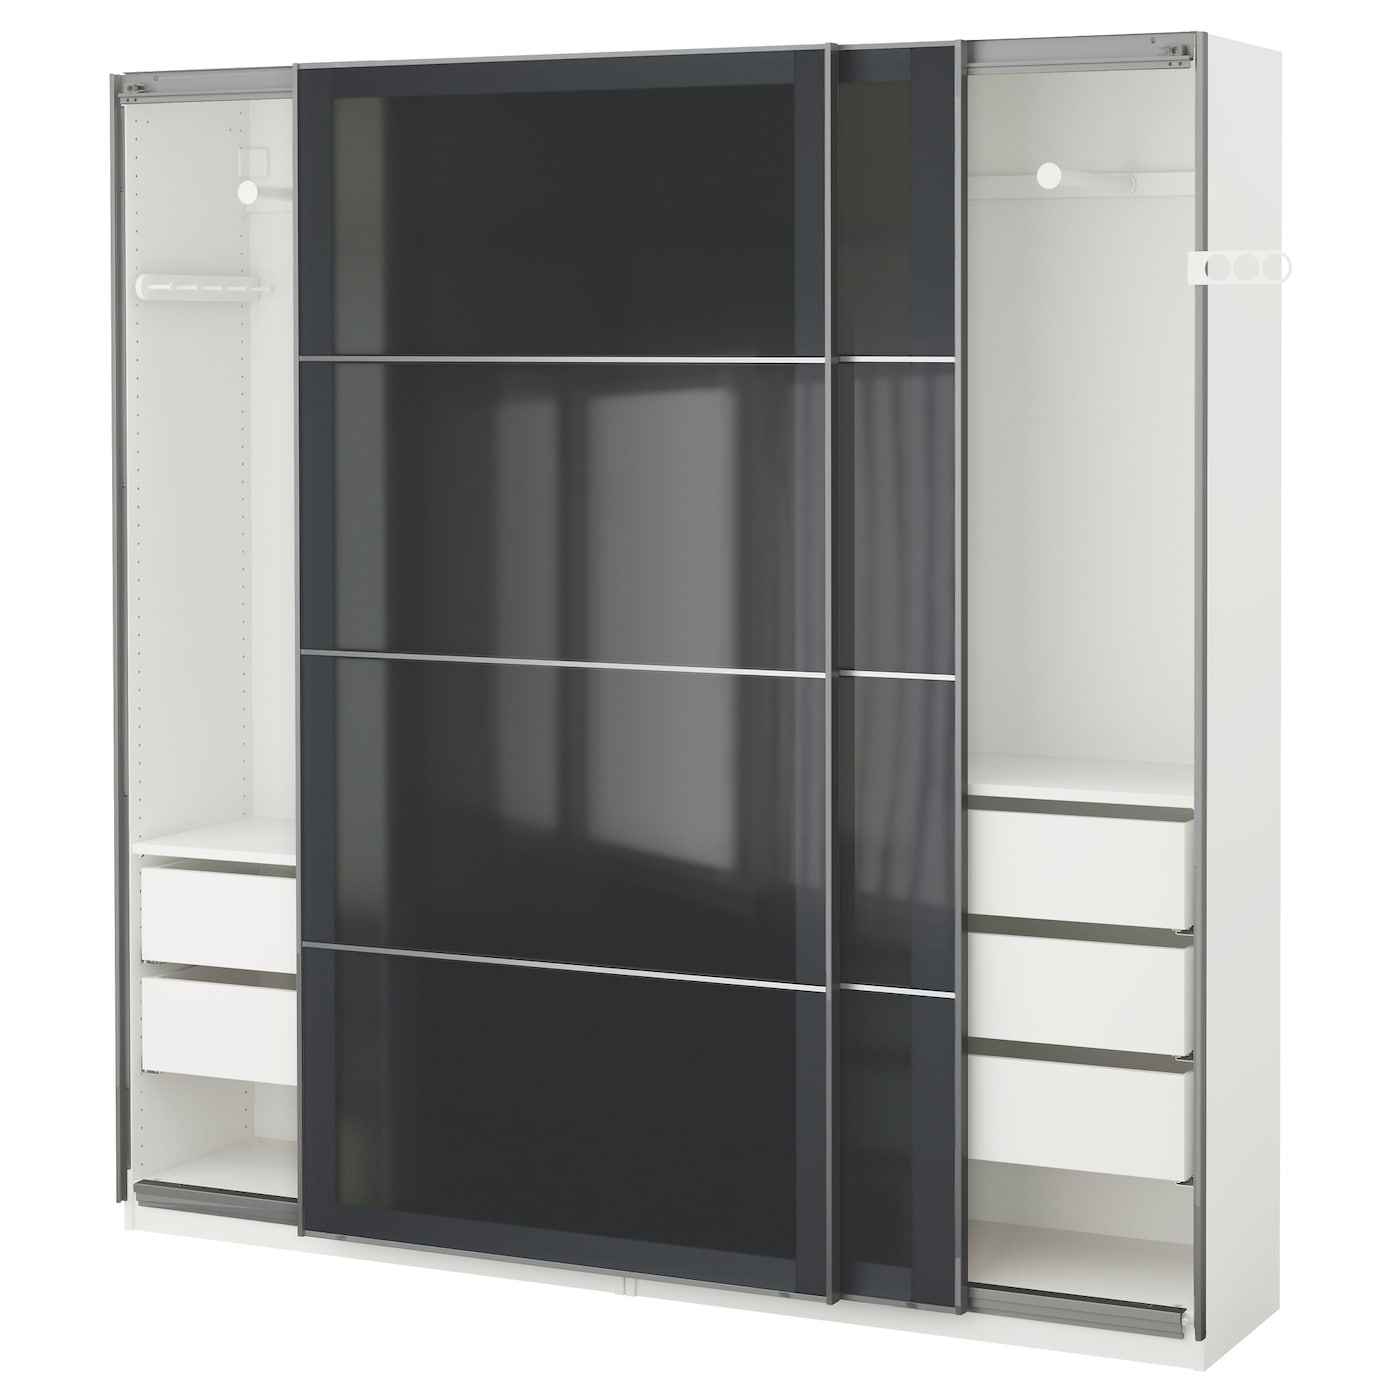 pax wardrobe white uggdal grey glass 200x44x201 cm ikea. Black Bedroom Furniture Sets. Home Design Ideas